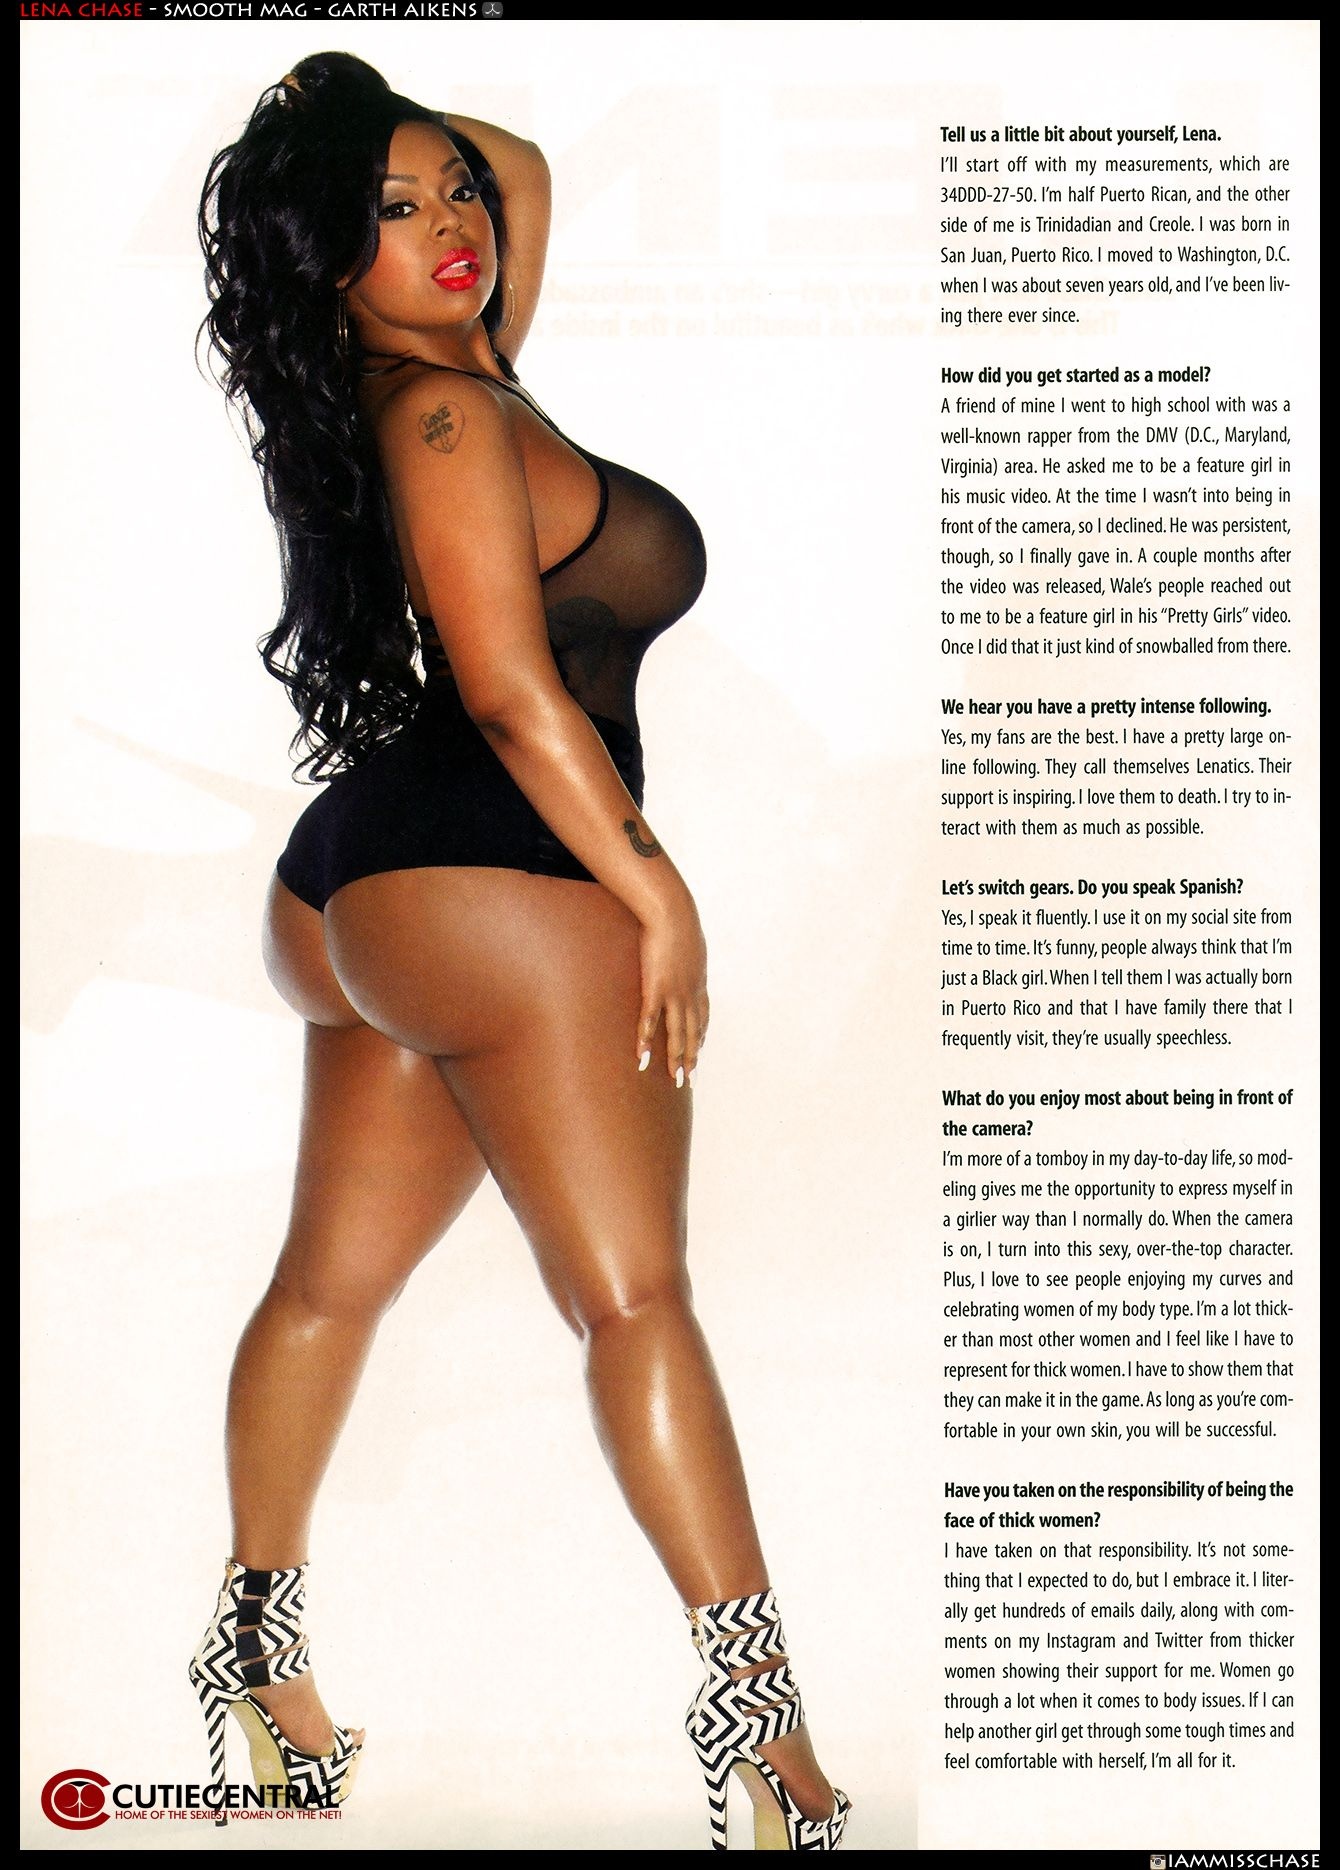 Lena chase smooth magazine spread lena chase smooth and magazines lena chase smooth magazine spread we up on it part 3 thecheapjerseys Images